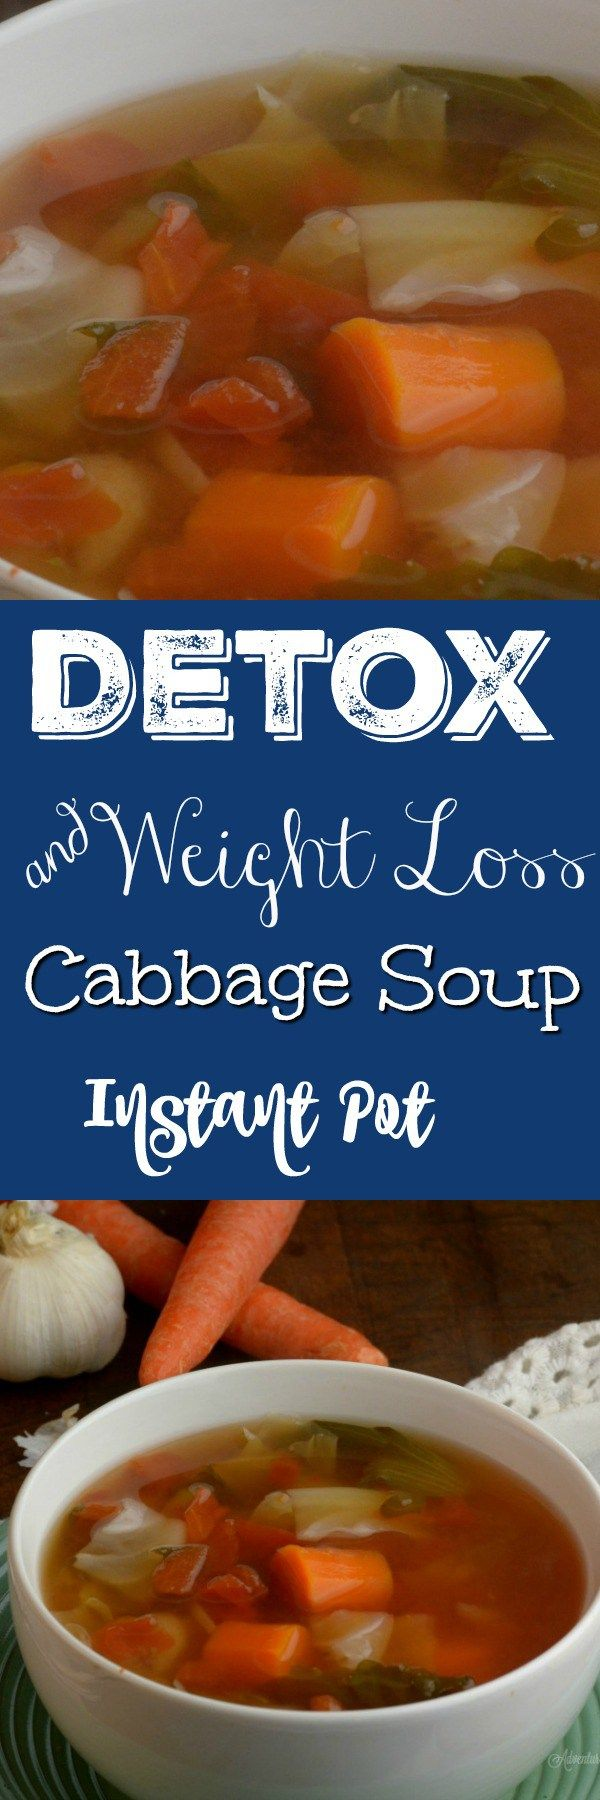 nstant Pot Detox and Weightloss Cabbage Soup This soup is packed full of vitamins and nutrients with a kick to boost your weightloss.